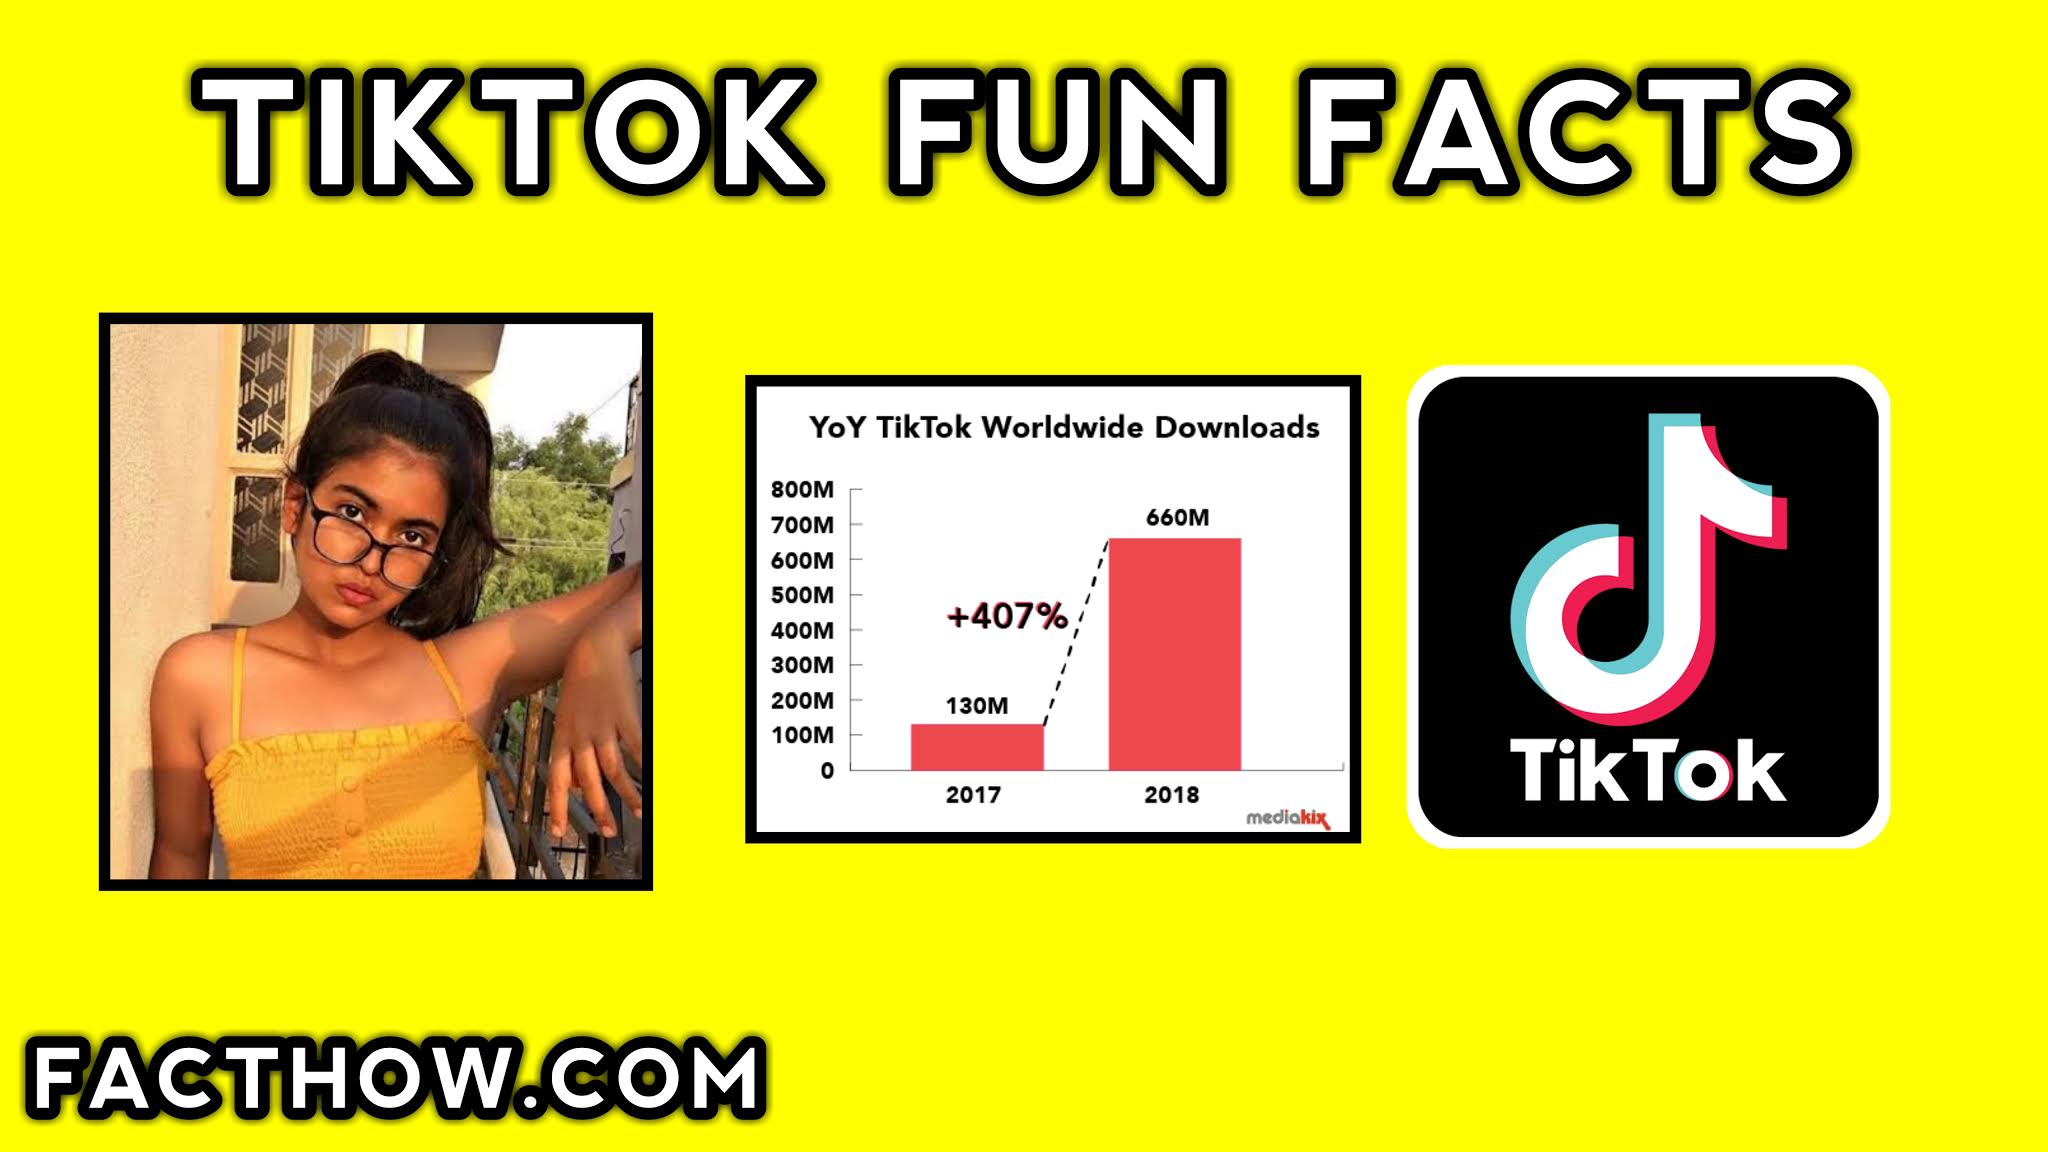 Douyin-tiktok-fun-facts-hindi-amazing-interesting-tiktok-facts-hindi-fact-how-facthow-tiktok-se-jude-rochak-tathya-jaankari-tiktok-records-tiktok-free-fans-follower-likes-increase-tricks-hacks-tiktok-facts-hindi